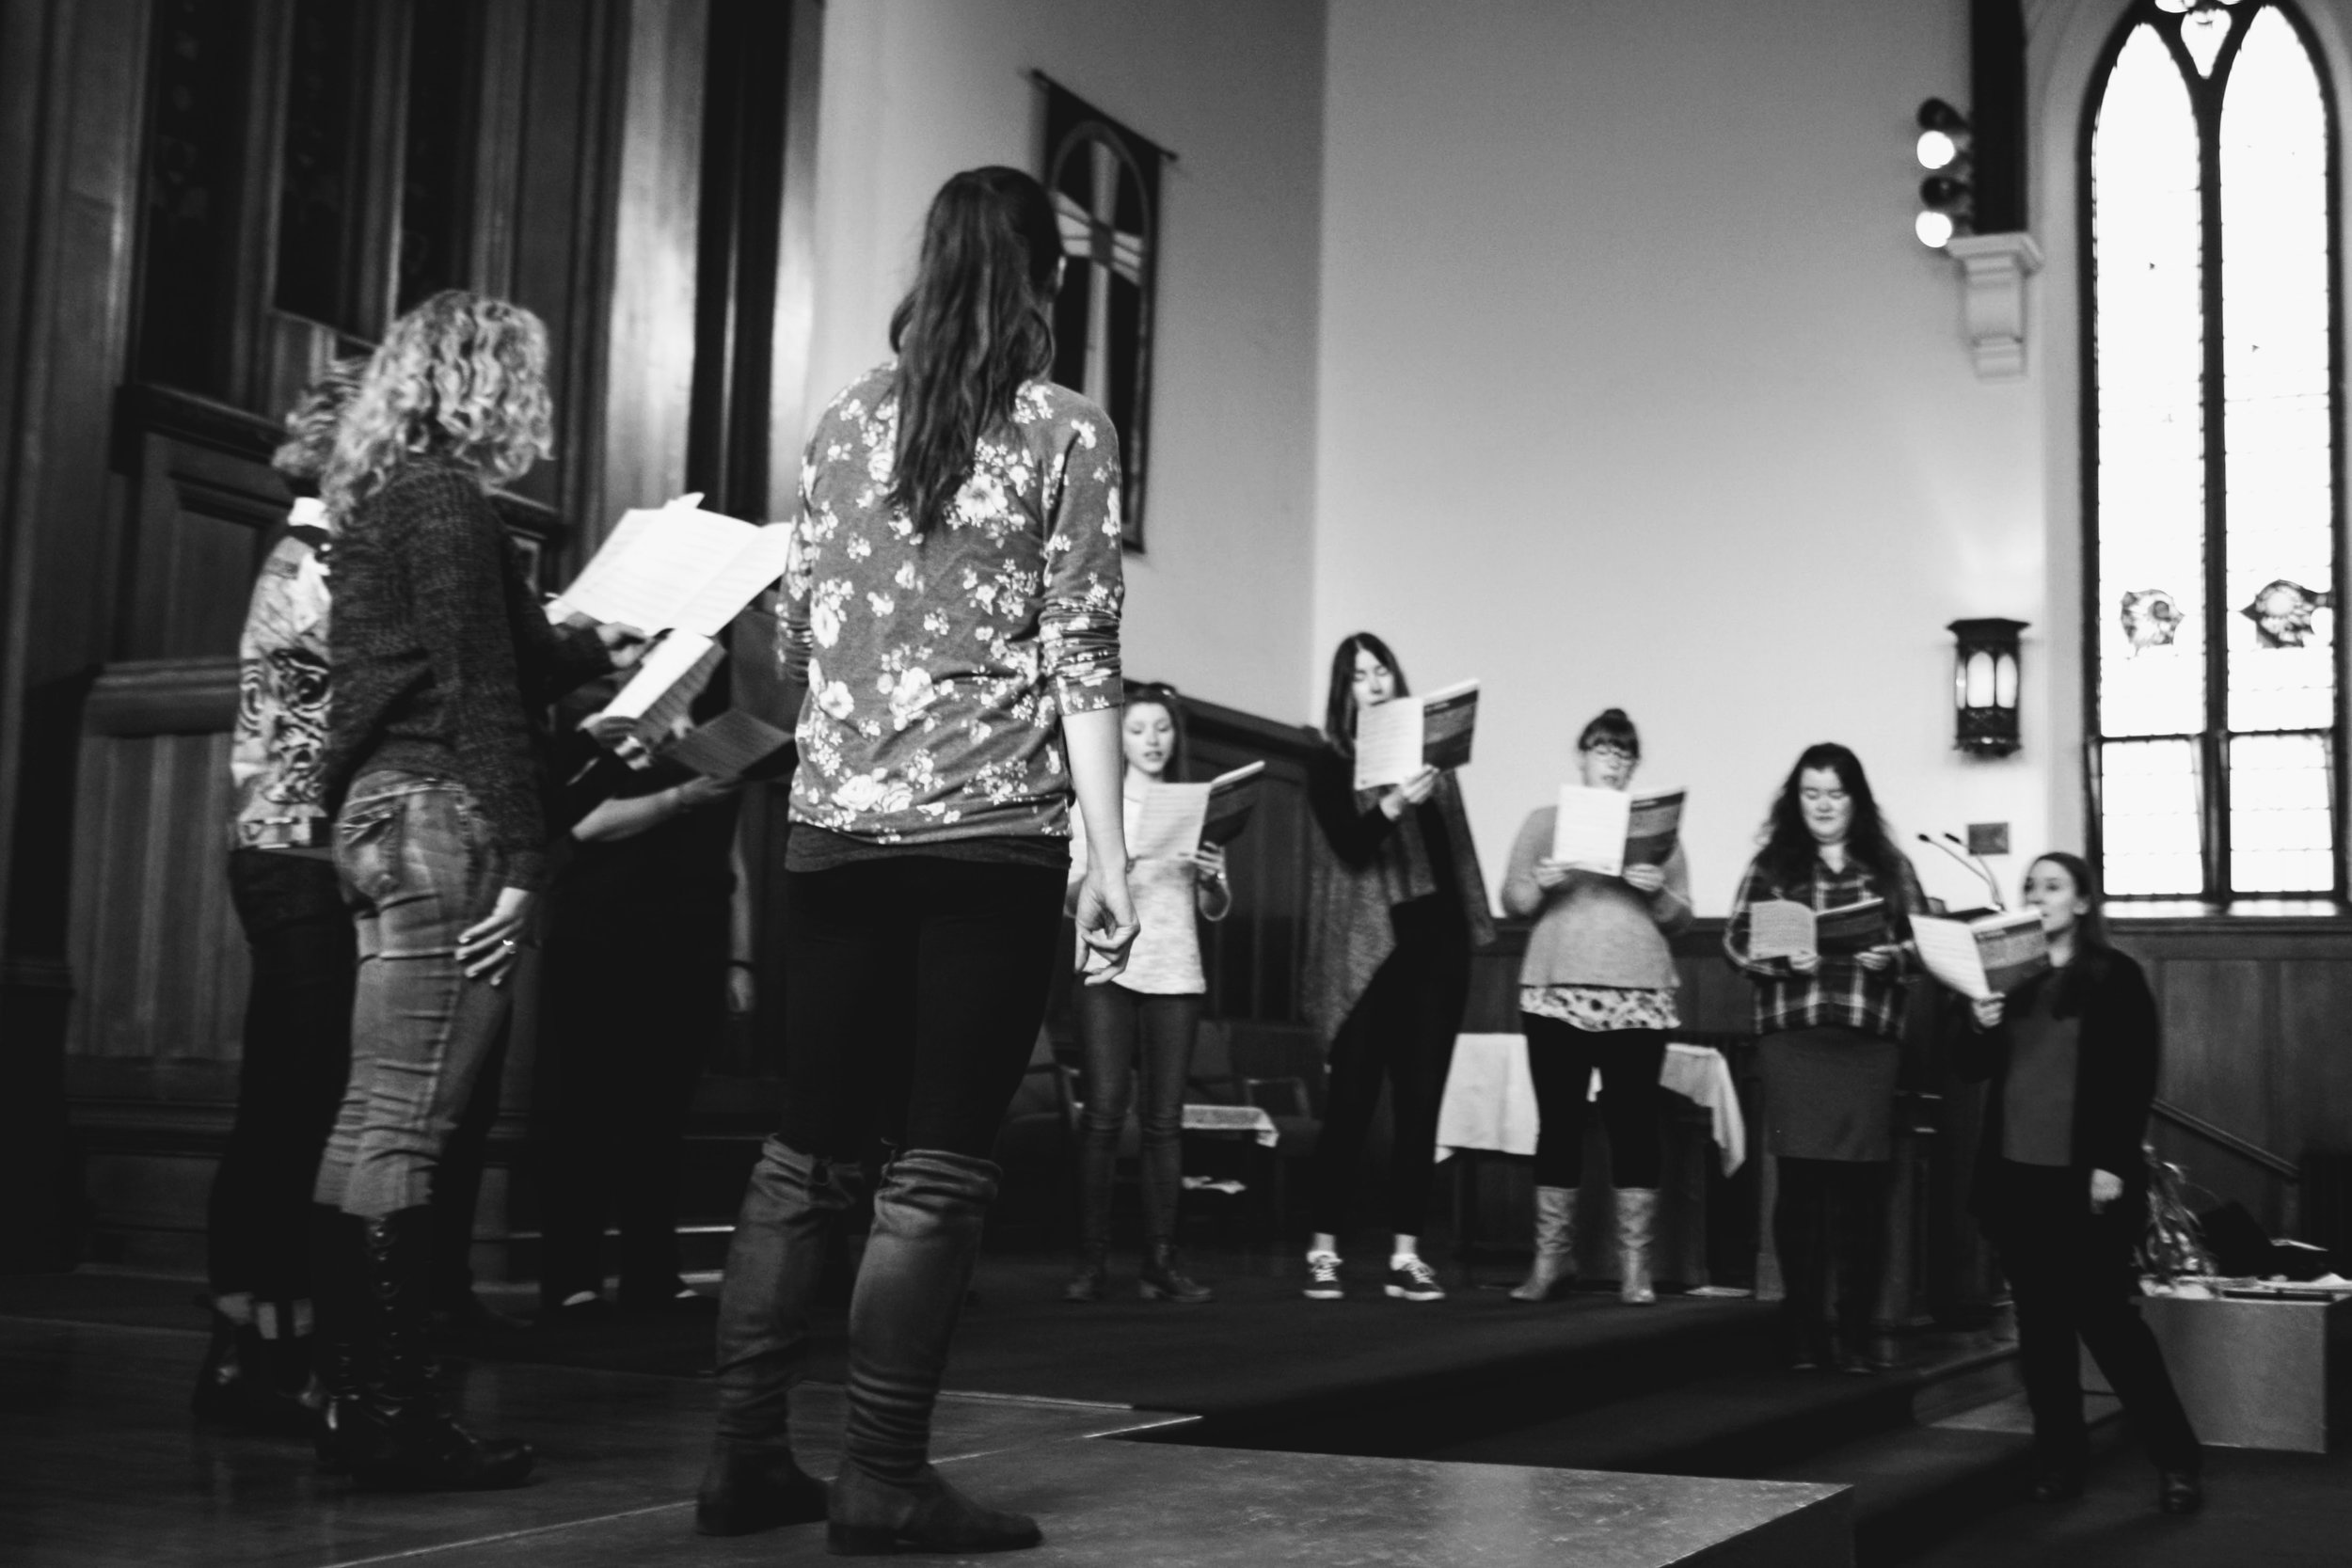 Rehearsing at First Baptist Church. Photo Credit: Jasmine Stairs